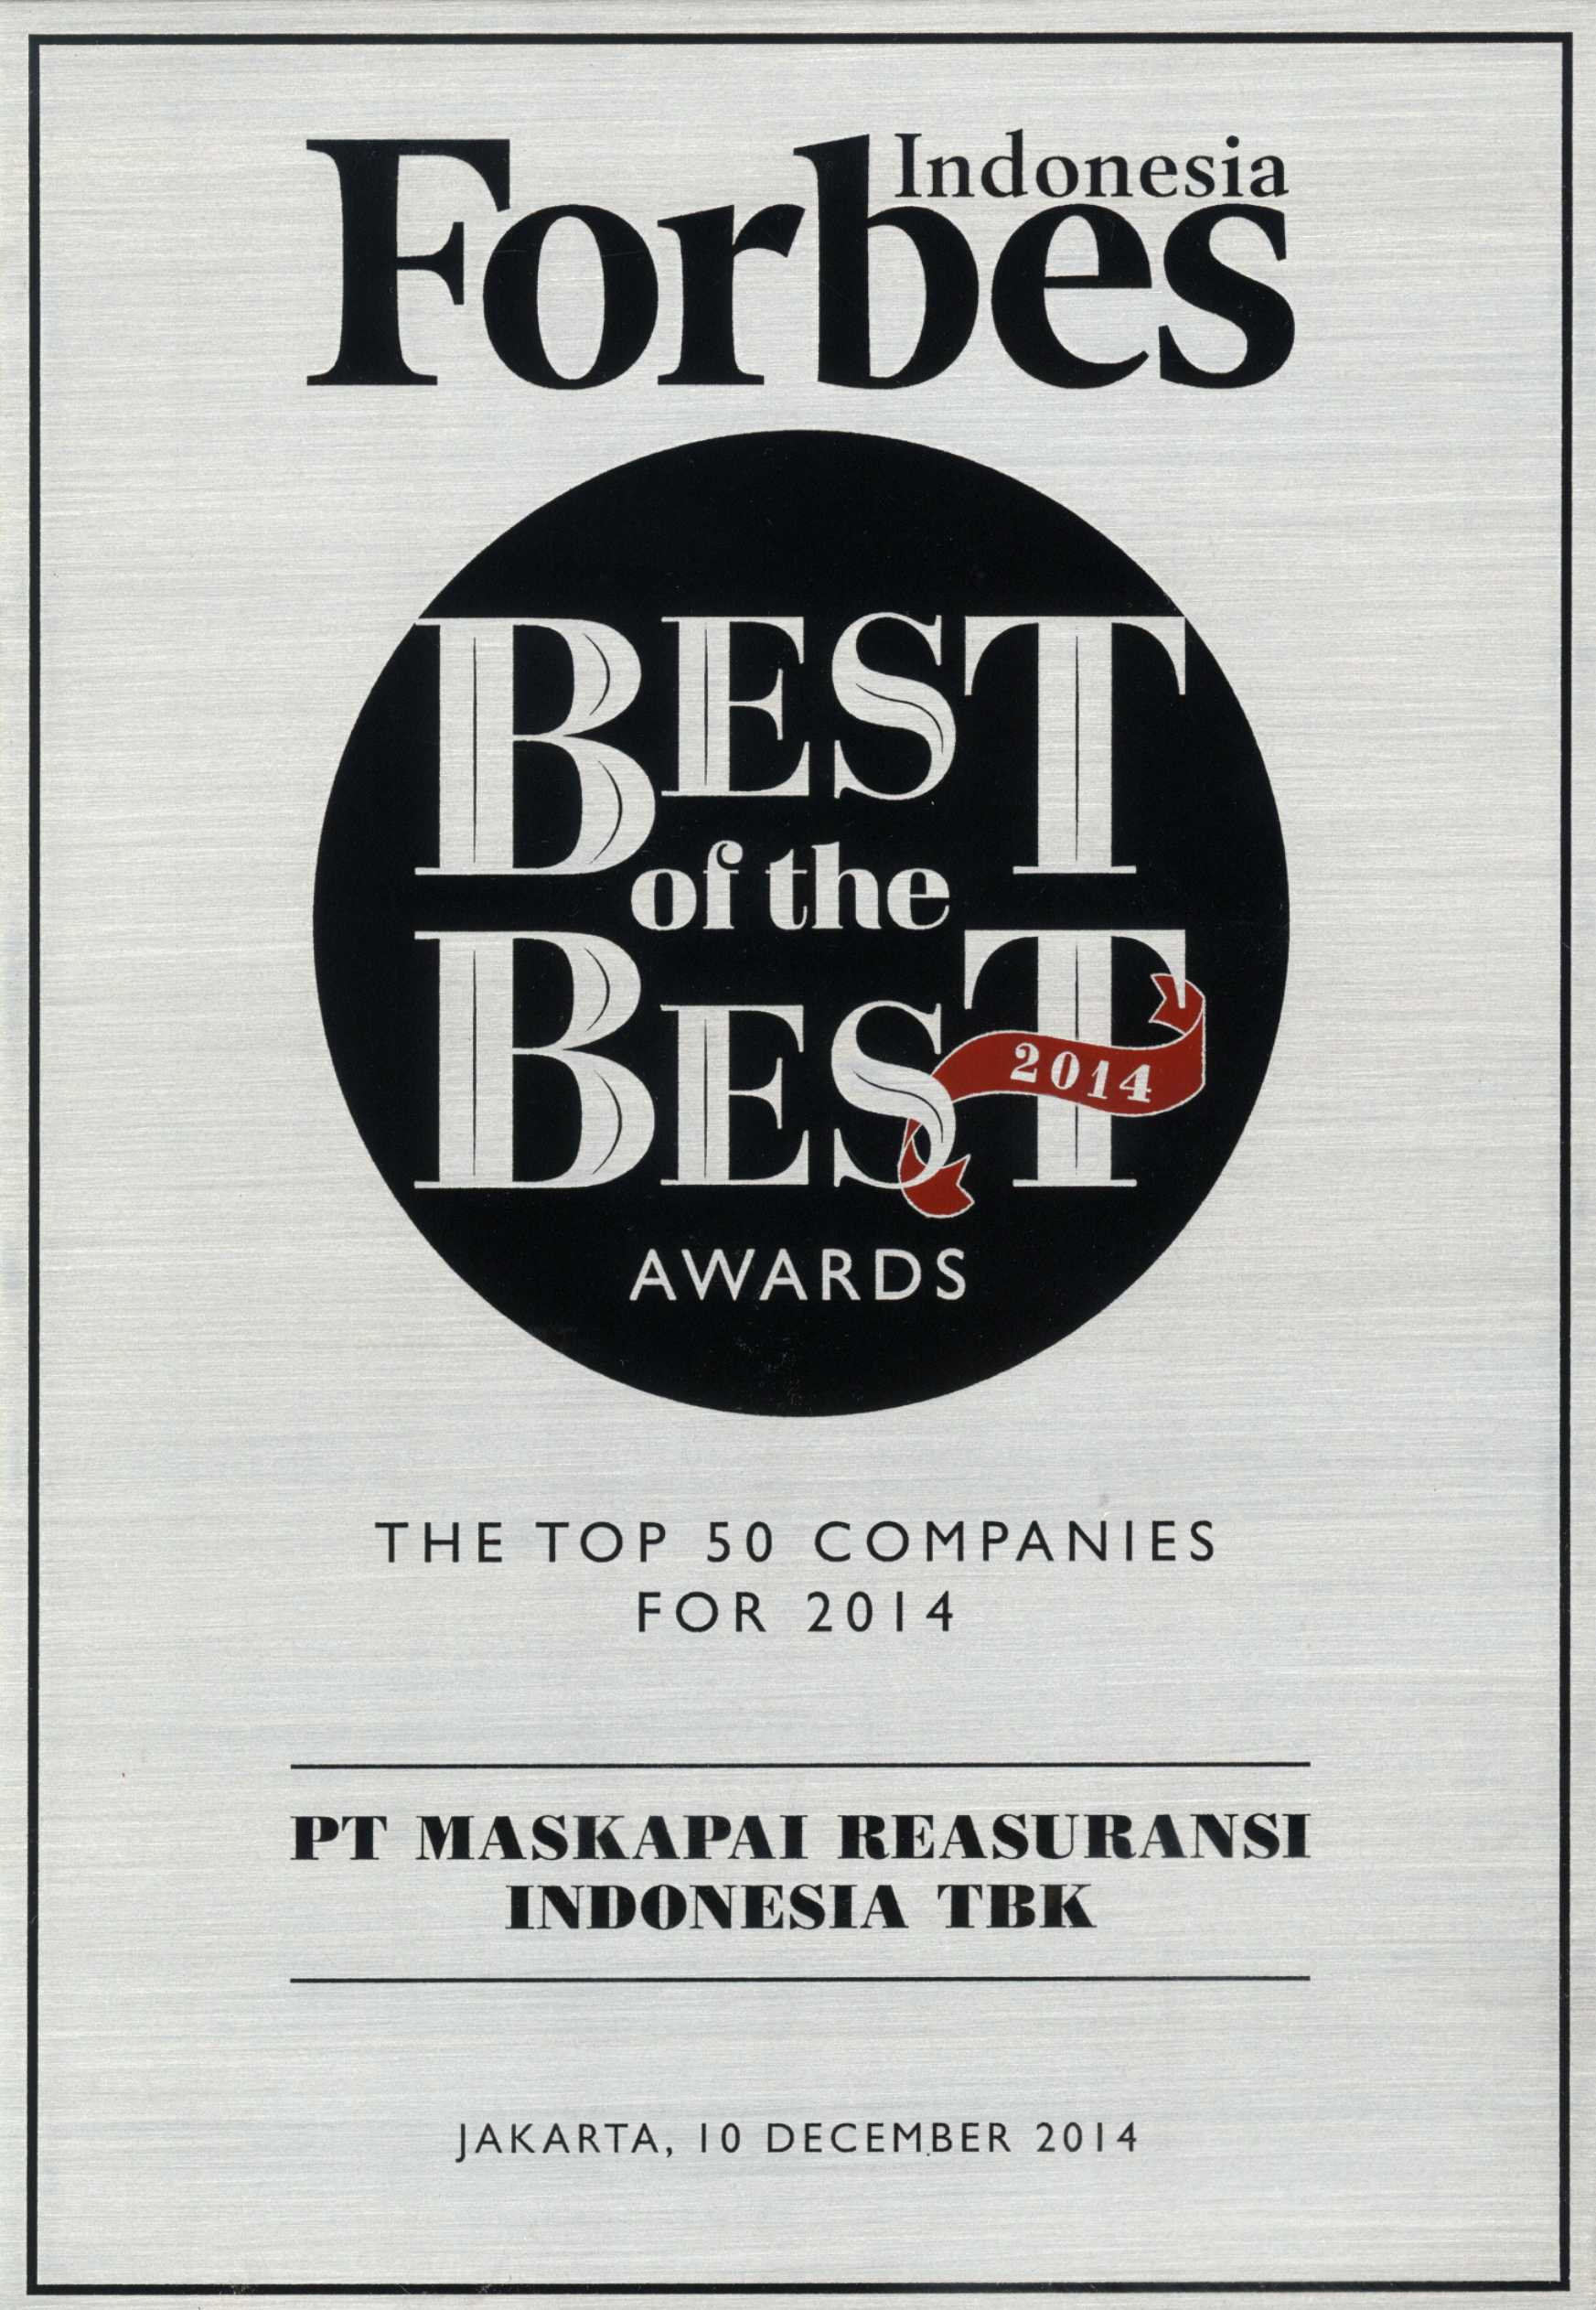 Majalah Forbes Indonesia : The Top 50 Companies Best of The Best Awards 2014